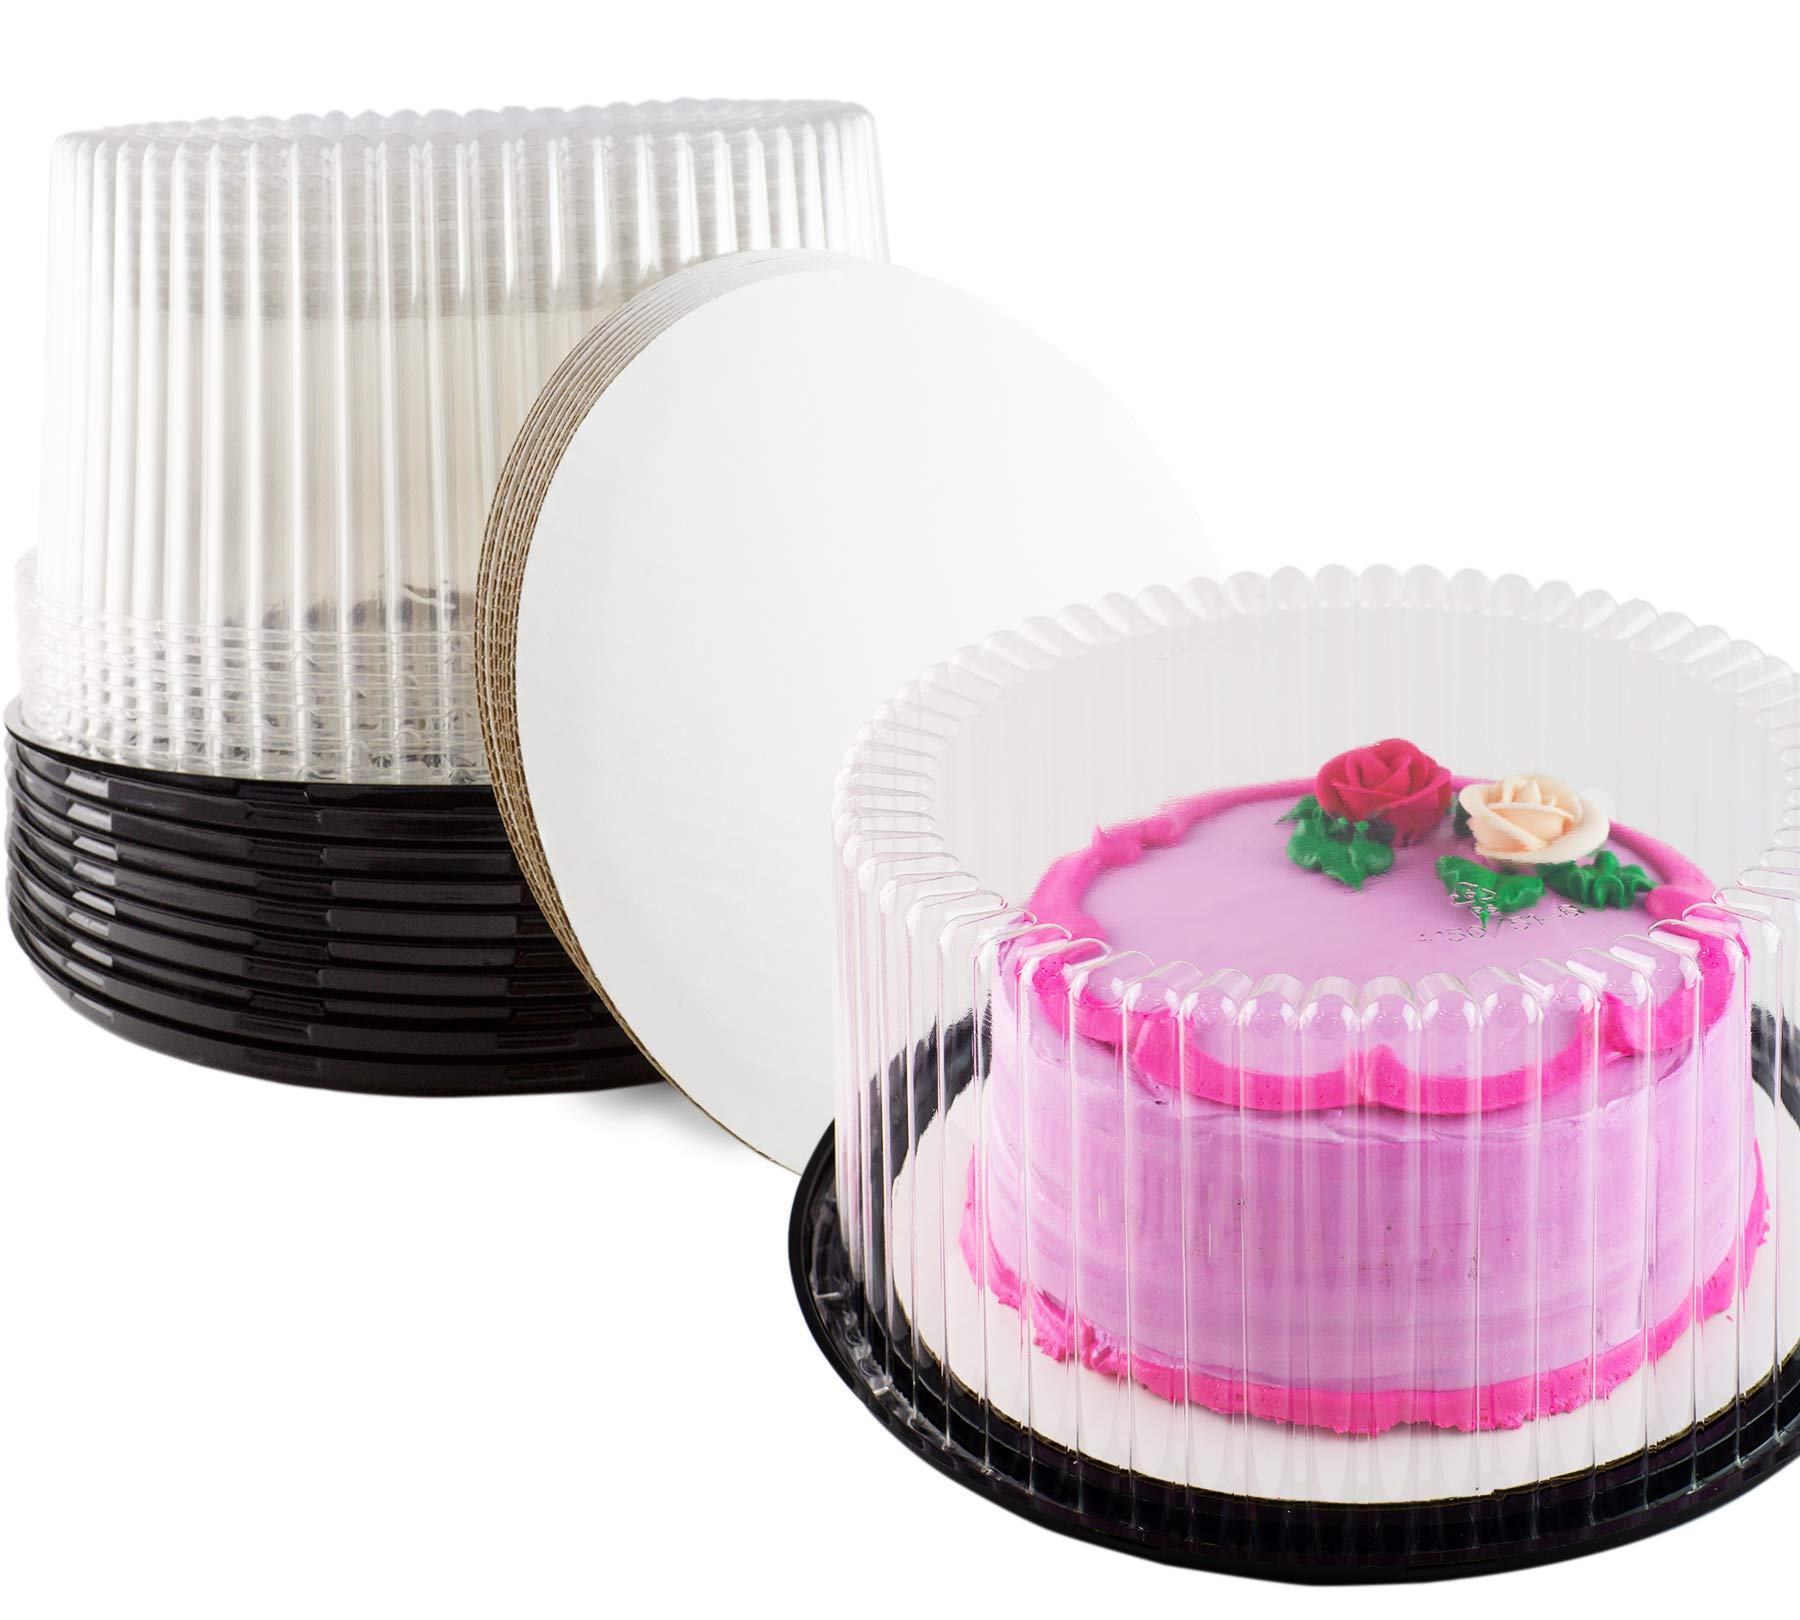 Plastic Cake Container & Board Set By Chefible: Extra-Strong Transparent Round 10'' Bakery Display/Storage Boxes With Base, Tall Dome Lid & Honeycomb Design + Sturdy 10'' Corrugated White Circles by Chefible® (Image #1)